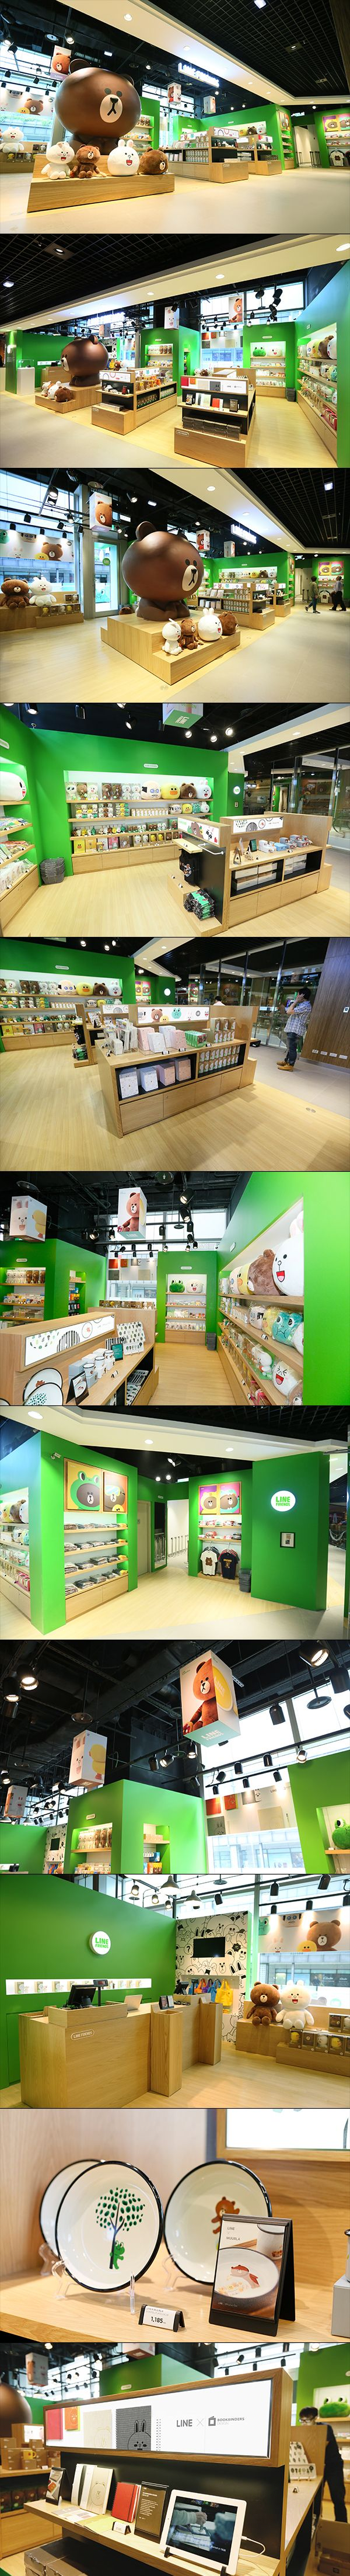 LINE FRIENDS Taipei store is Taiwan's first official store. The space is designed so that people can experience LINE FRIENDS not only as purchasable products but as characters displayed throughout the store, which incorporates collectible figure kit displ…